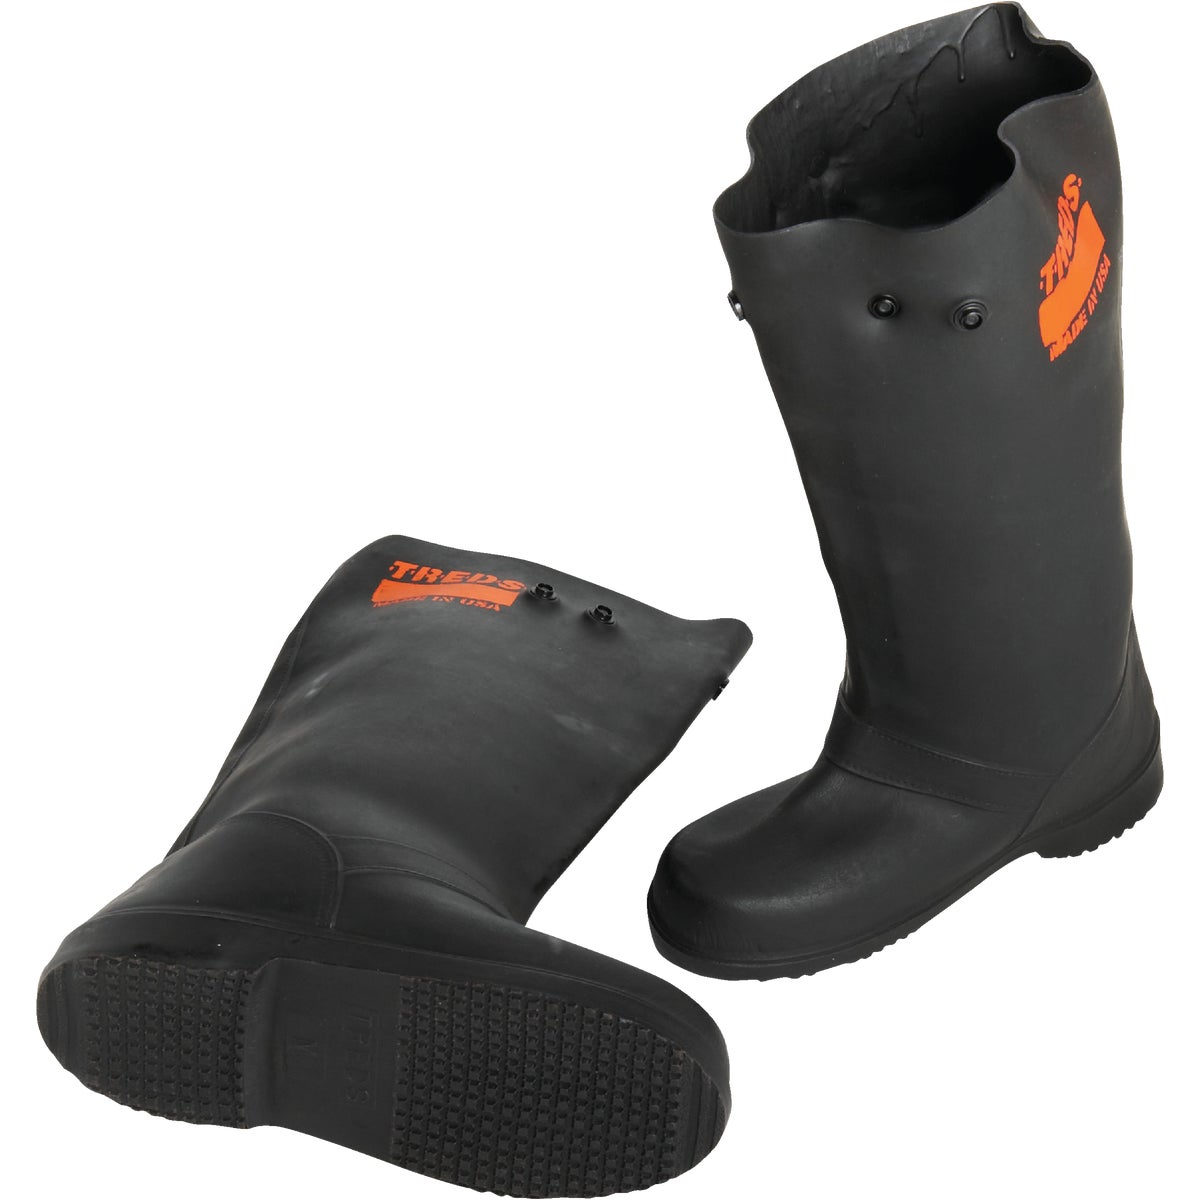 "17"" XL TREDS RUBBR BOOT - 17853 by Advantage Prod Treds"